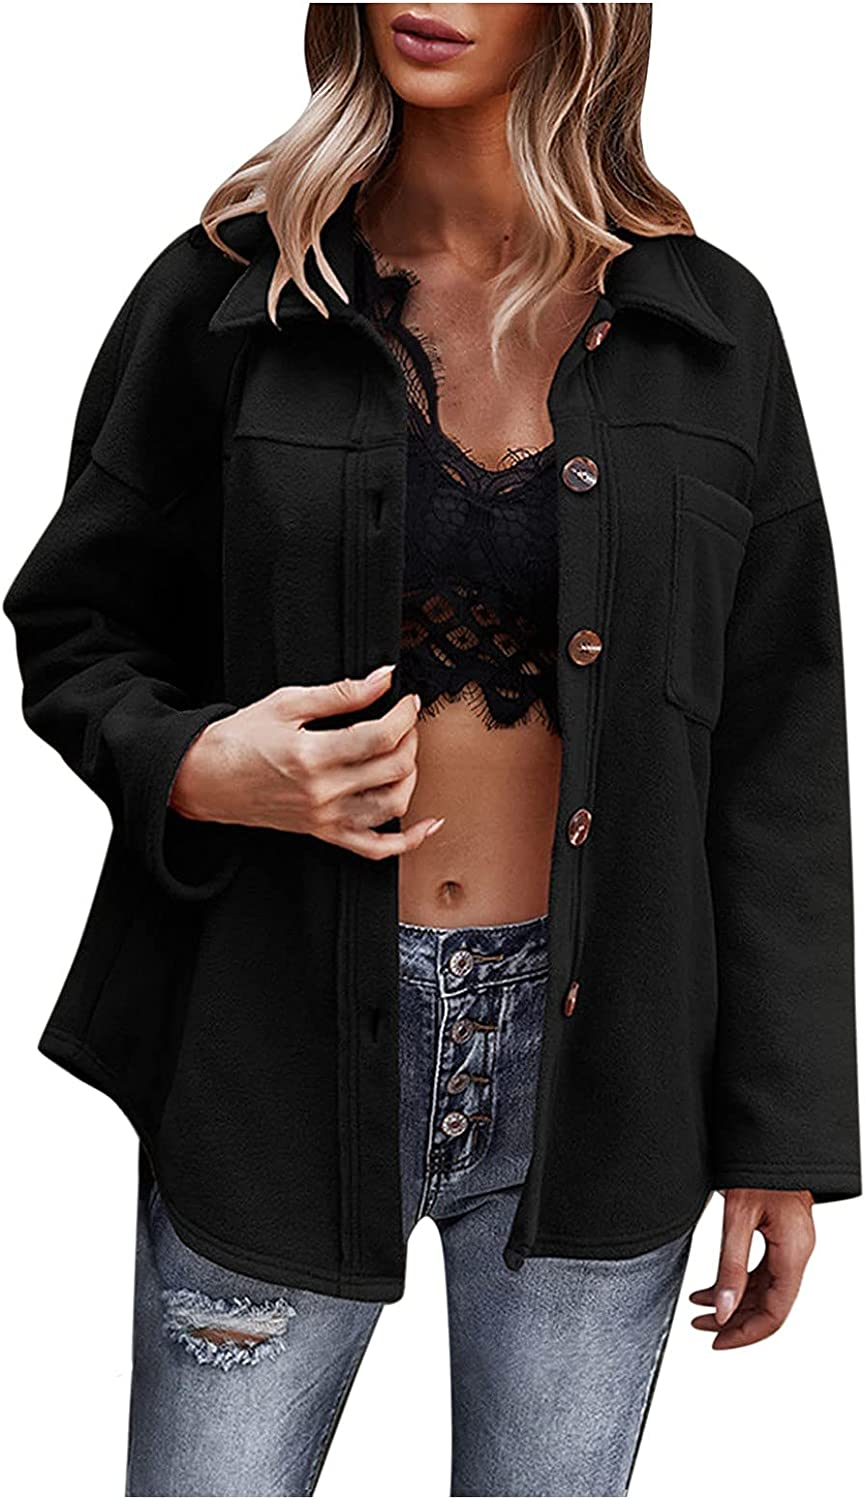 Womens Shacket Jacket Solid Color Wool Blend Long Sleeve Lapel Collar Button Down Shirt Lightweight Casual Coat